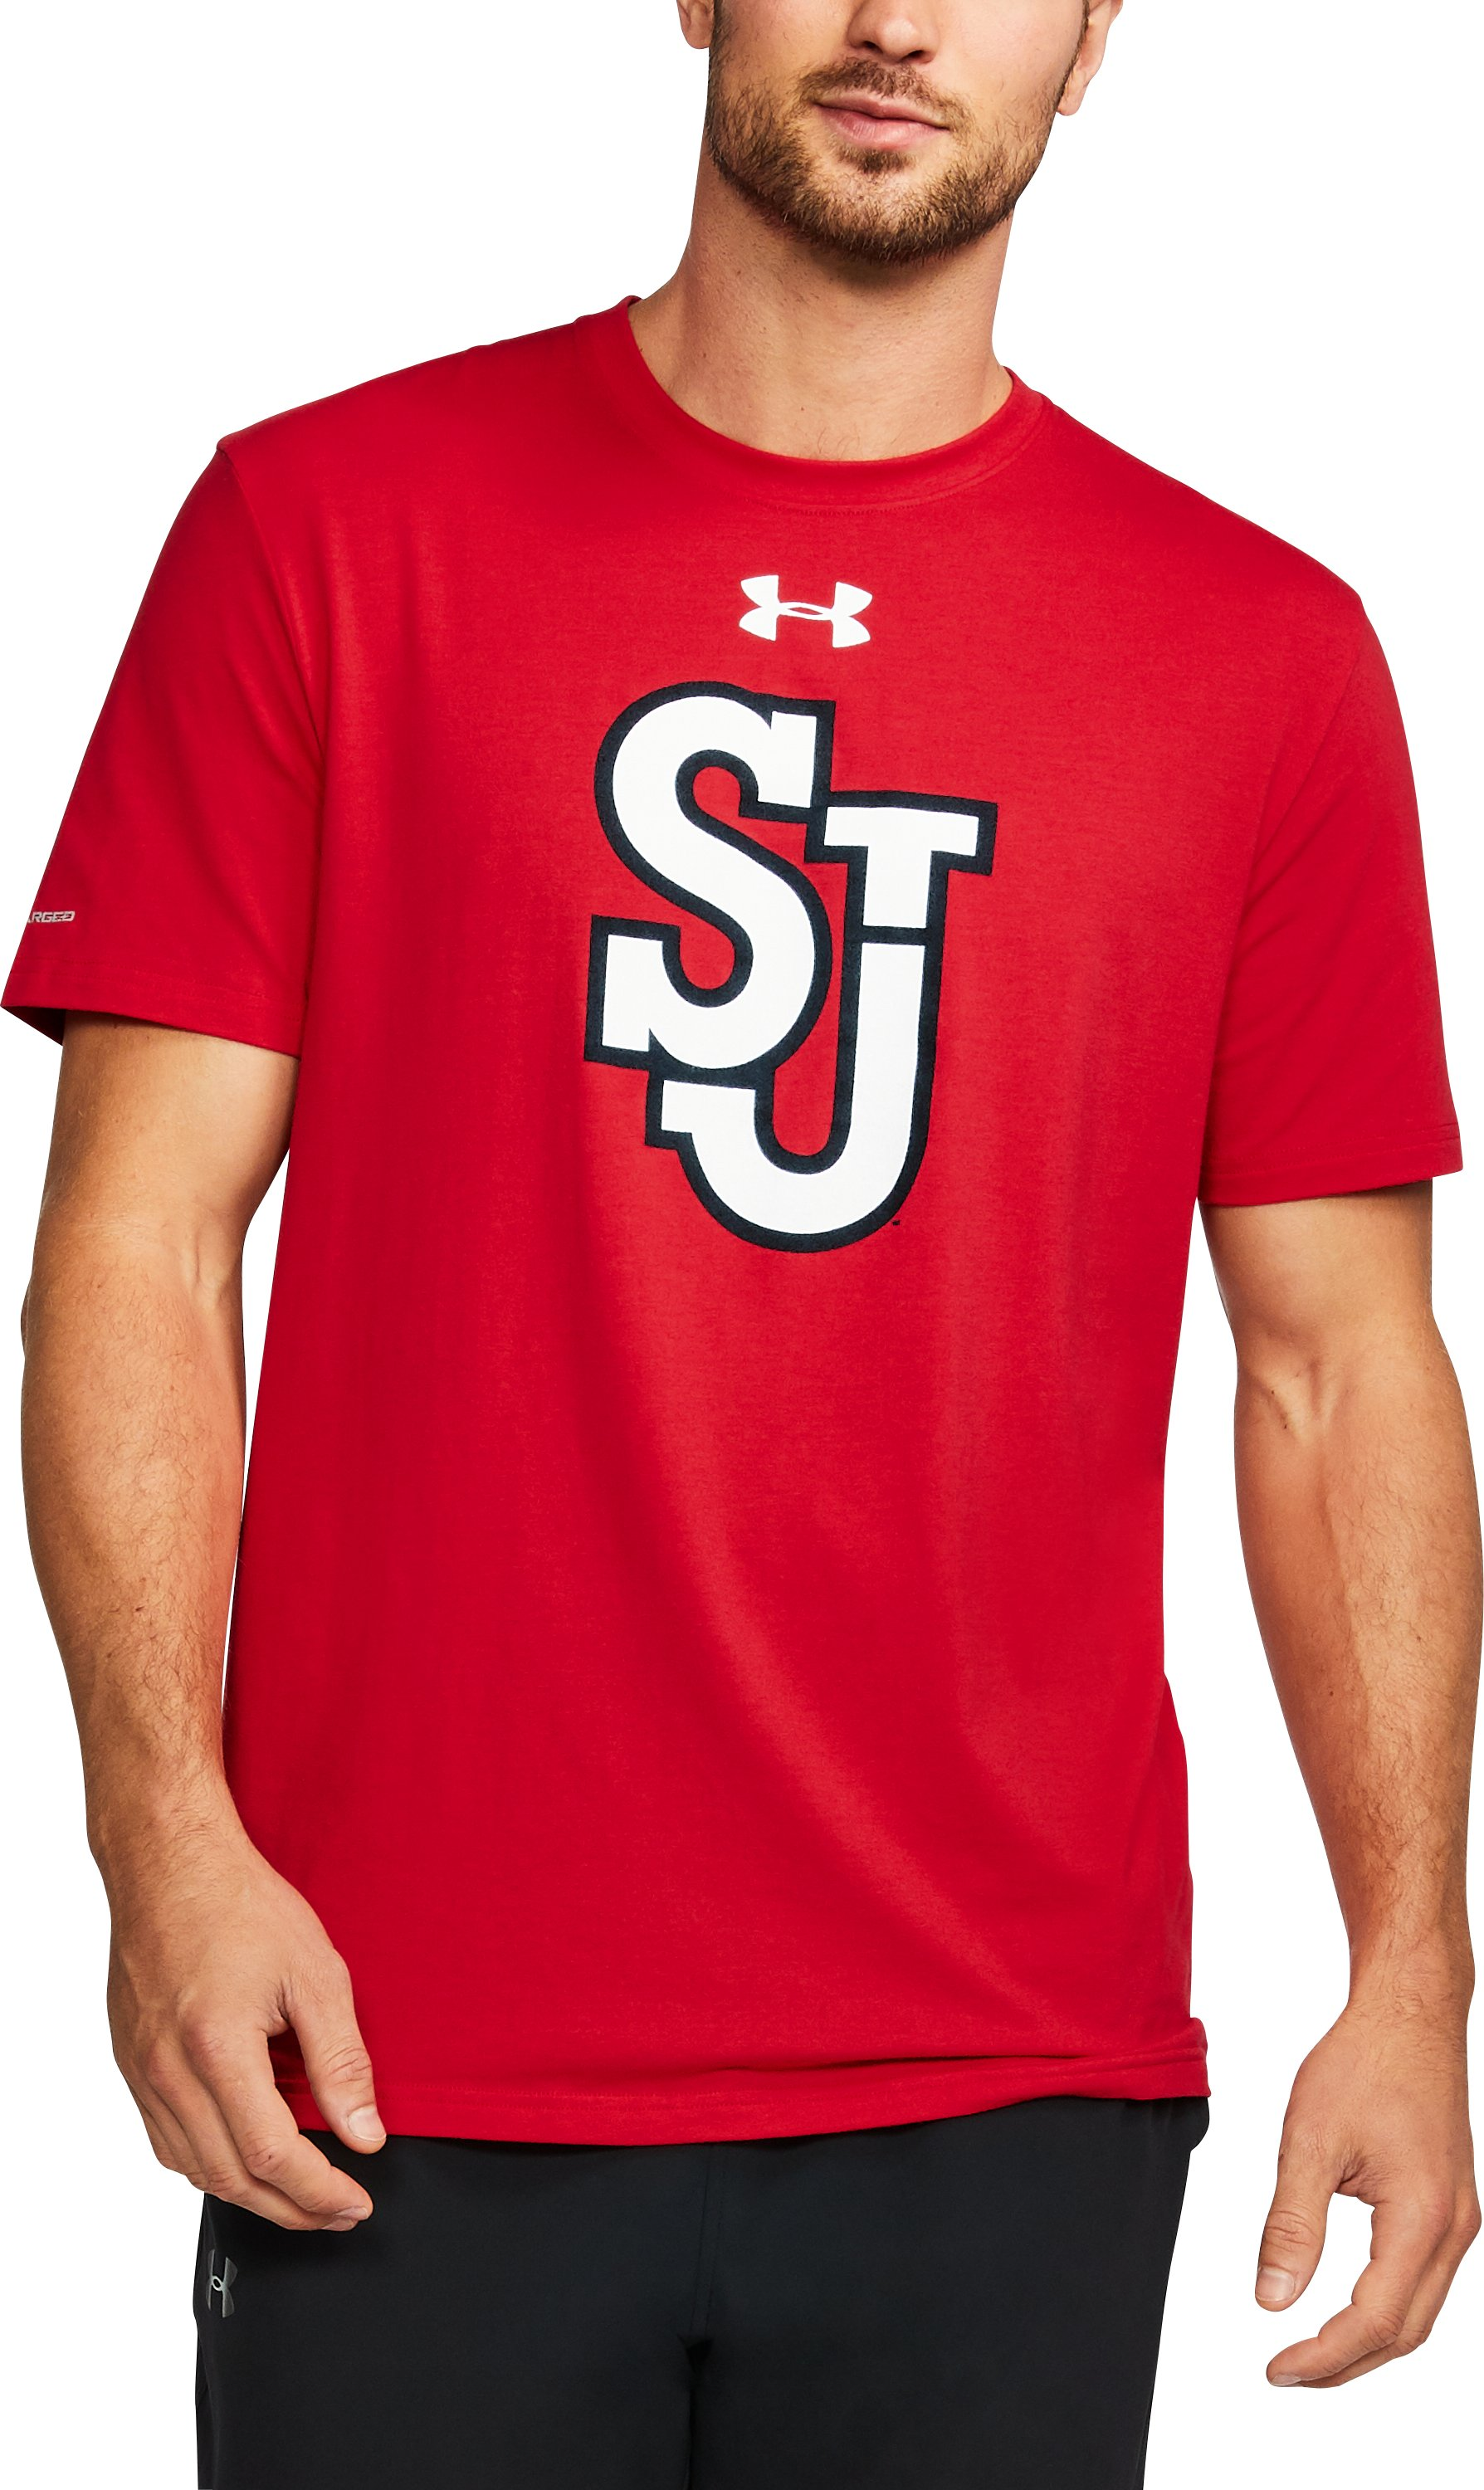 Men's St. John's Charged Cotton® T-Shirt, Red